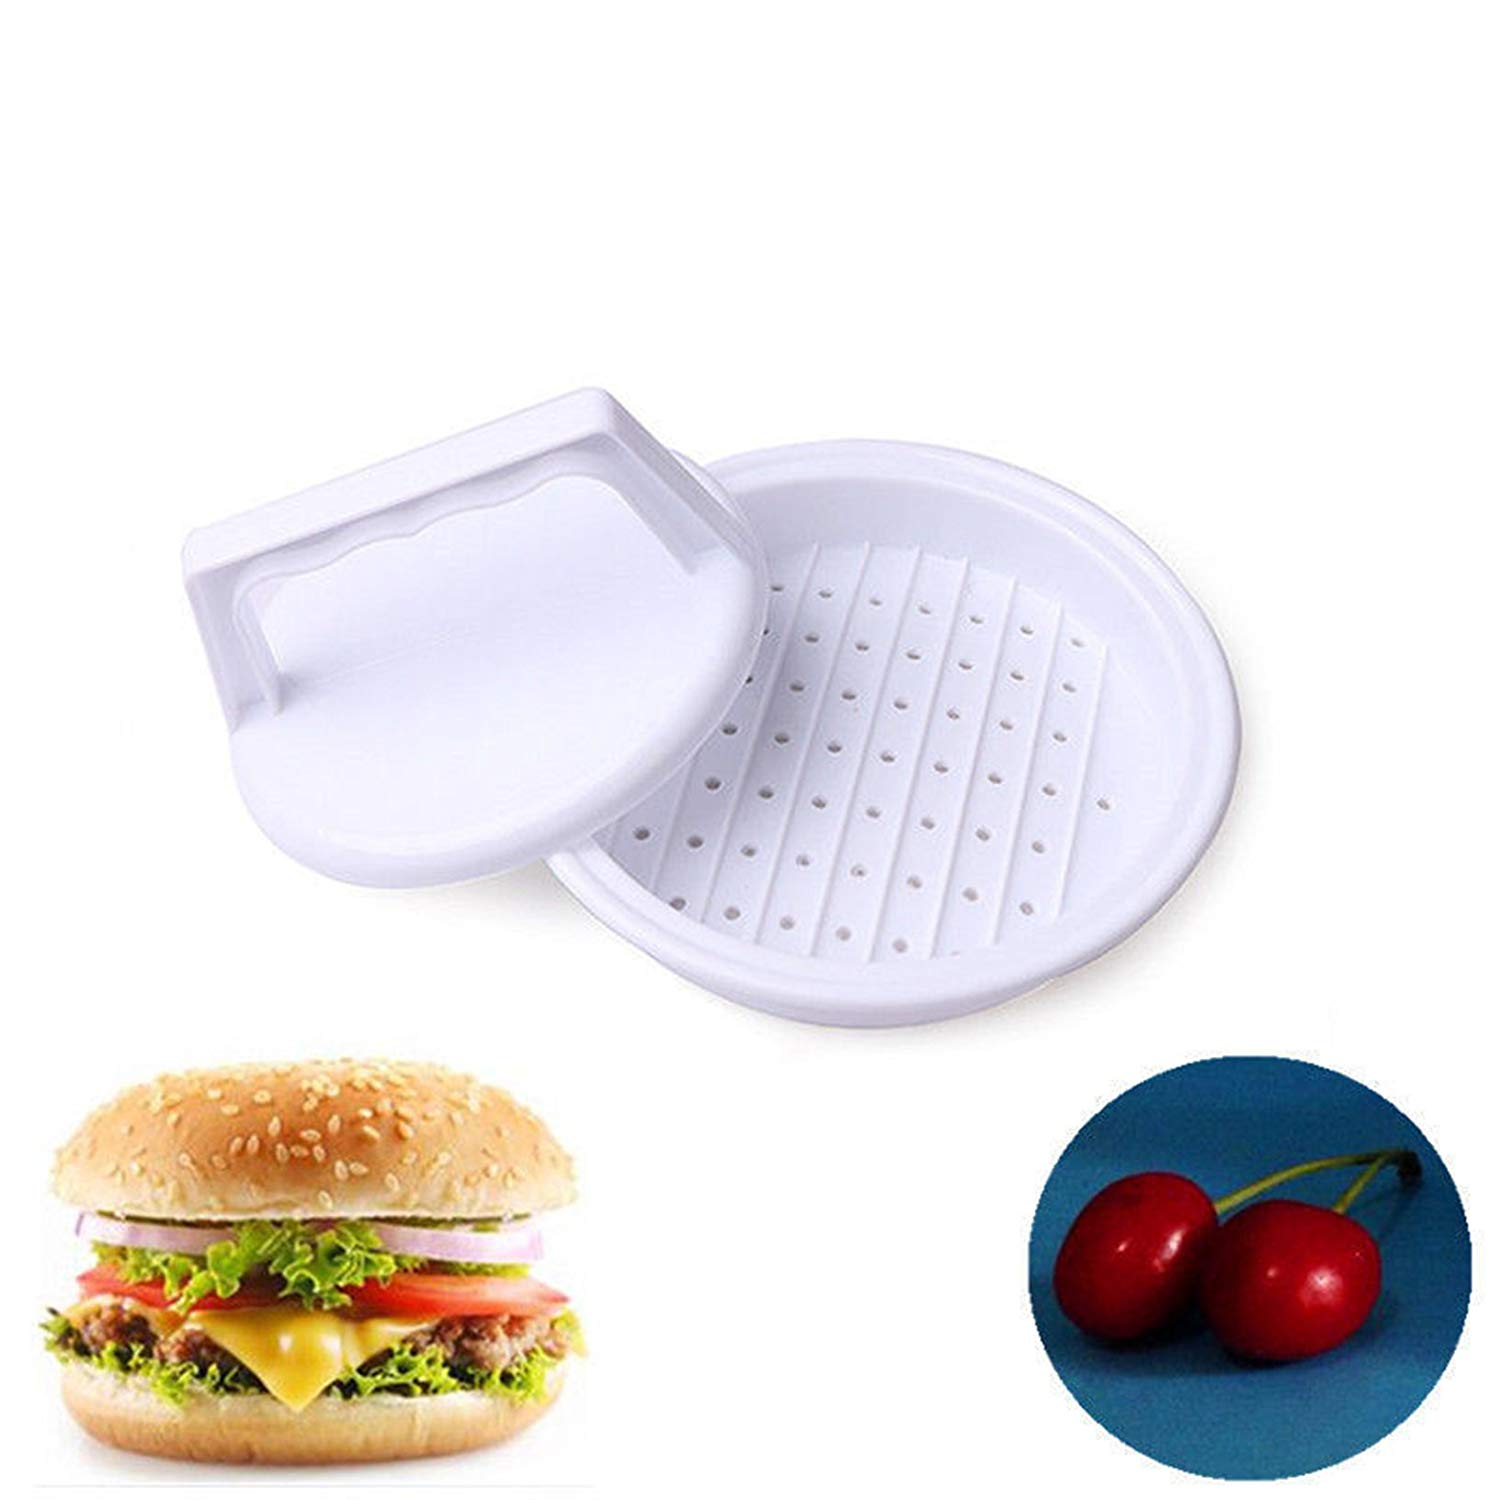 Toyofmine Plastic Burger Cooking Press Kitchen Beef Hot Grill Mold Hamburger Maker